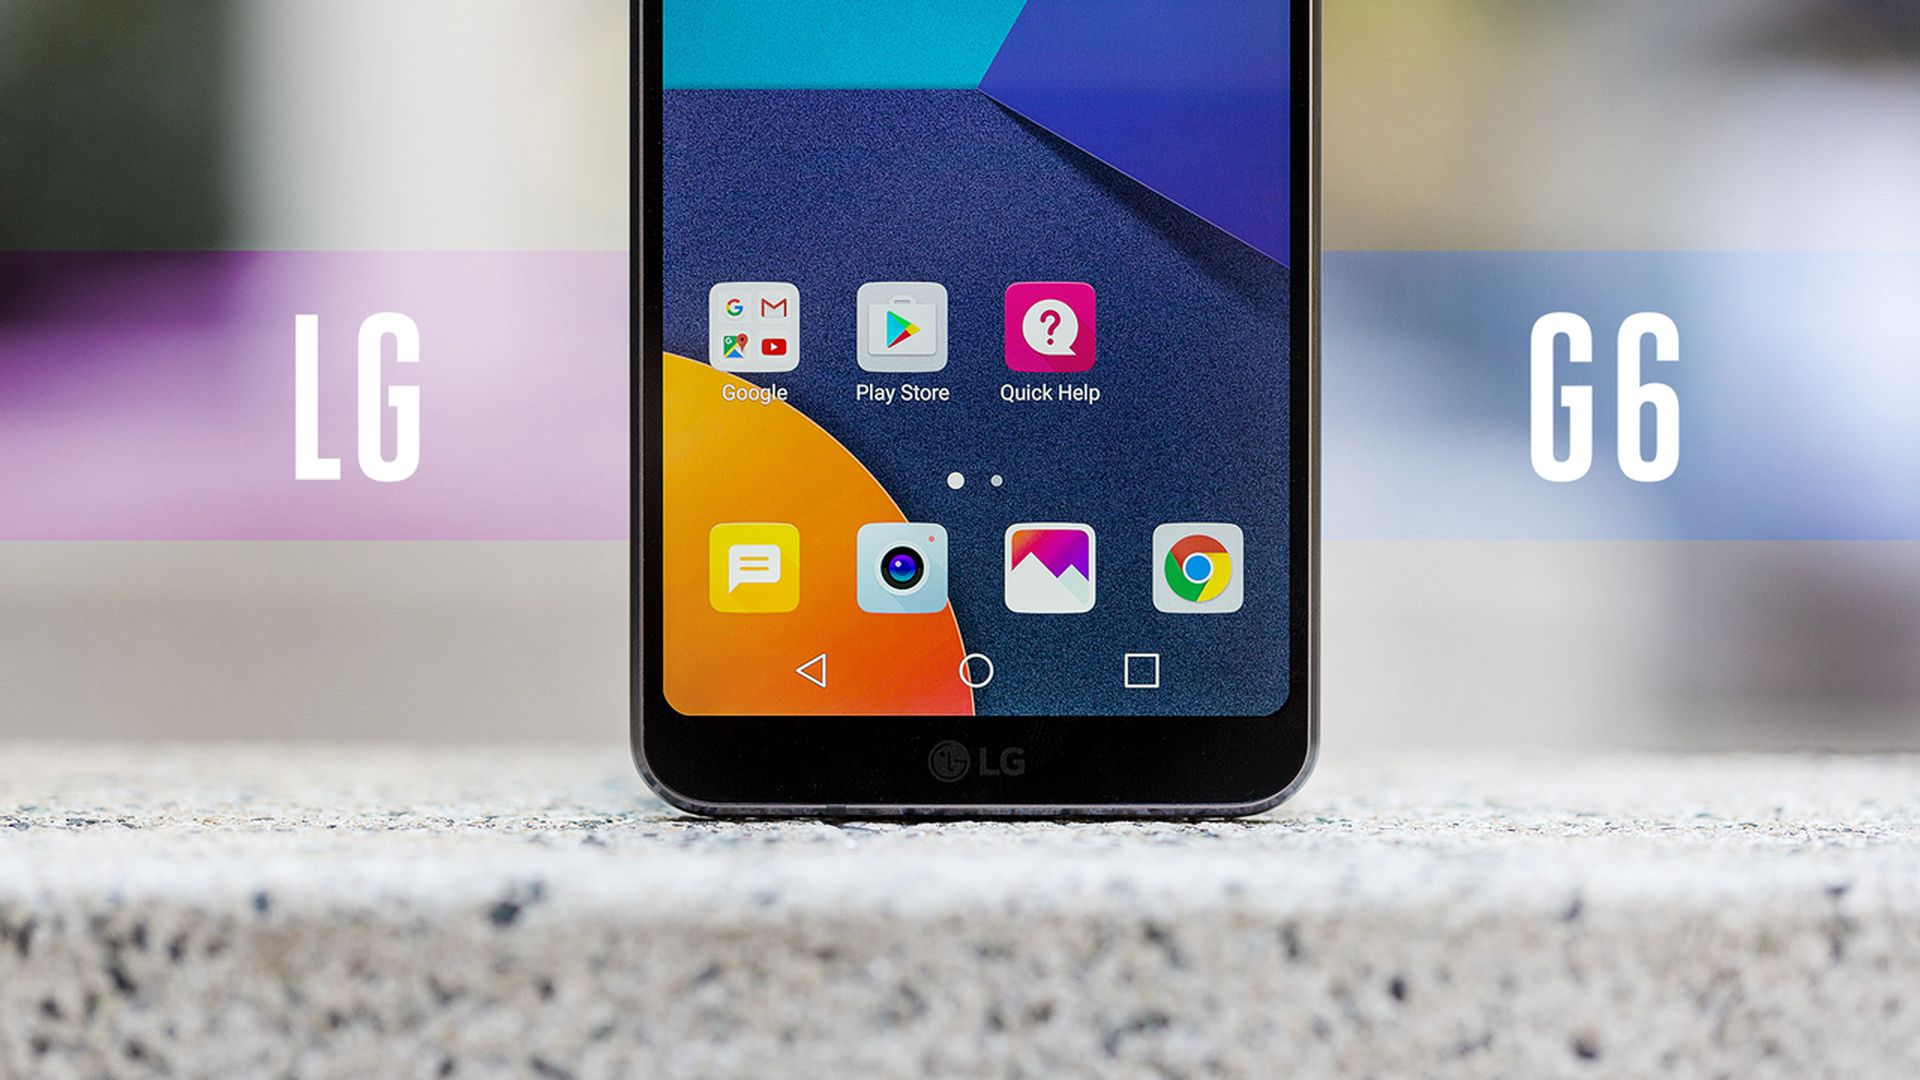 LG G6 review: participation award - The Verge